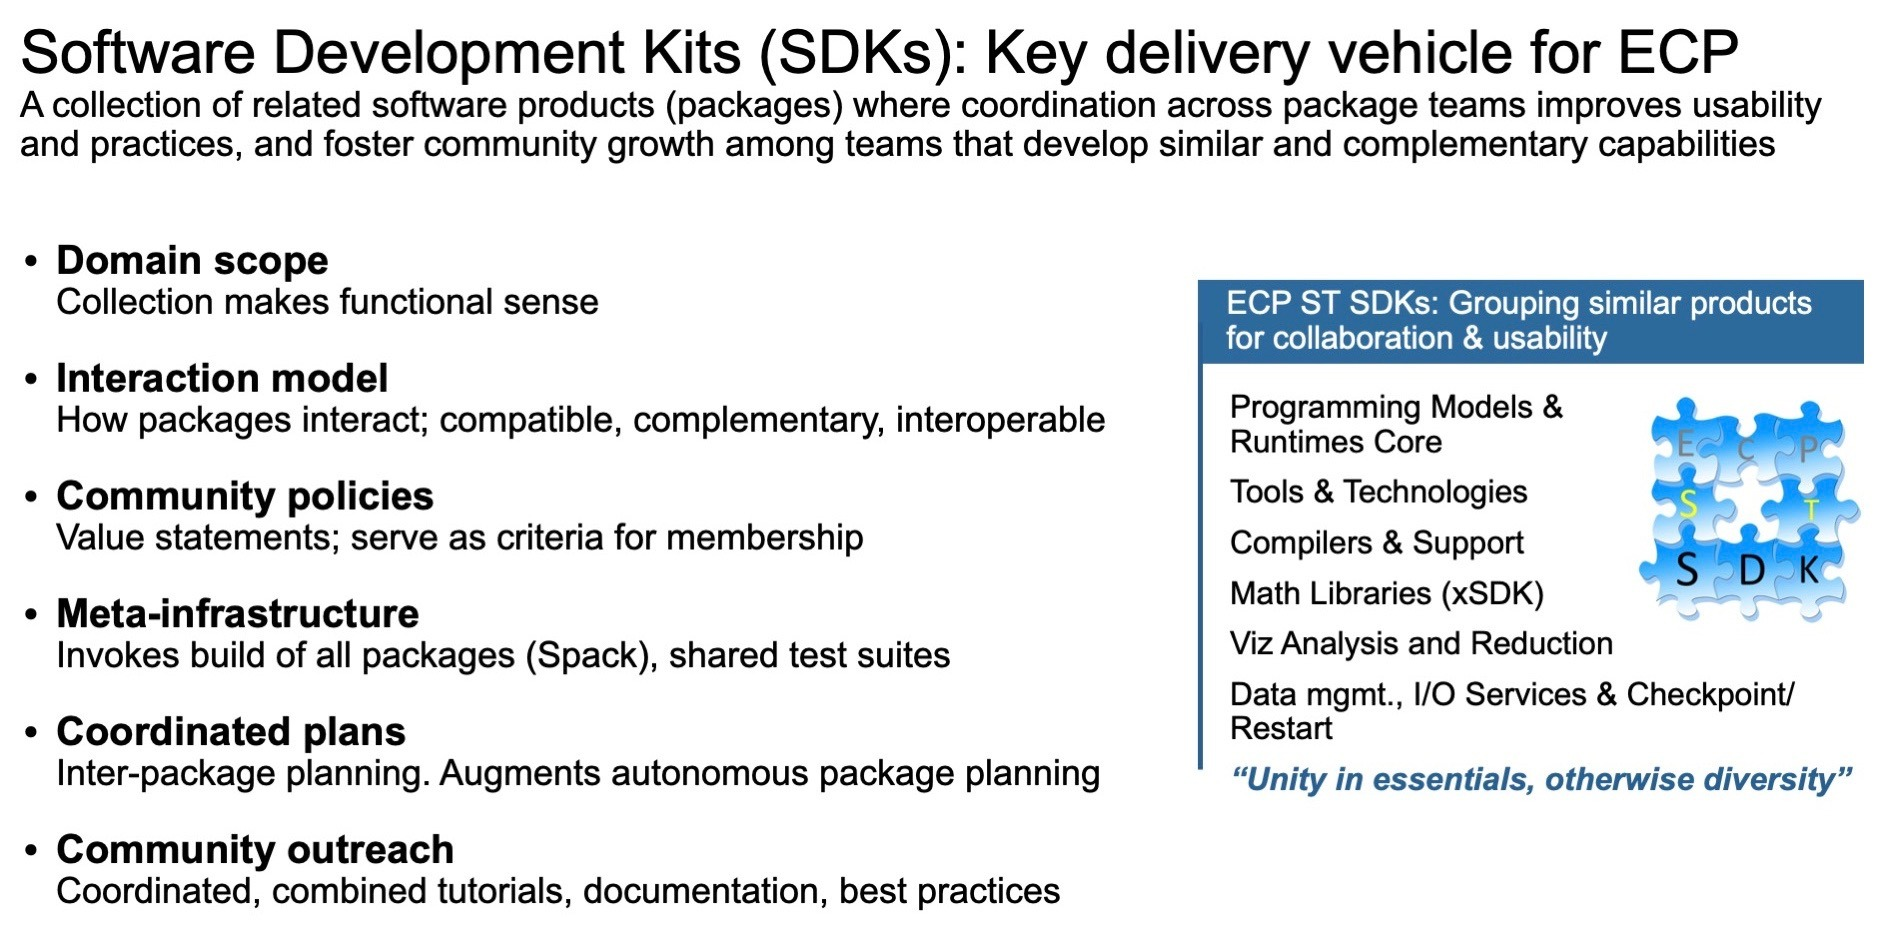 The Exascale Computing Project Software Development Kits